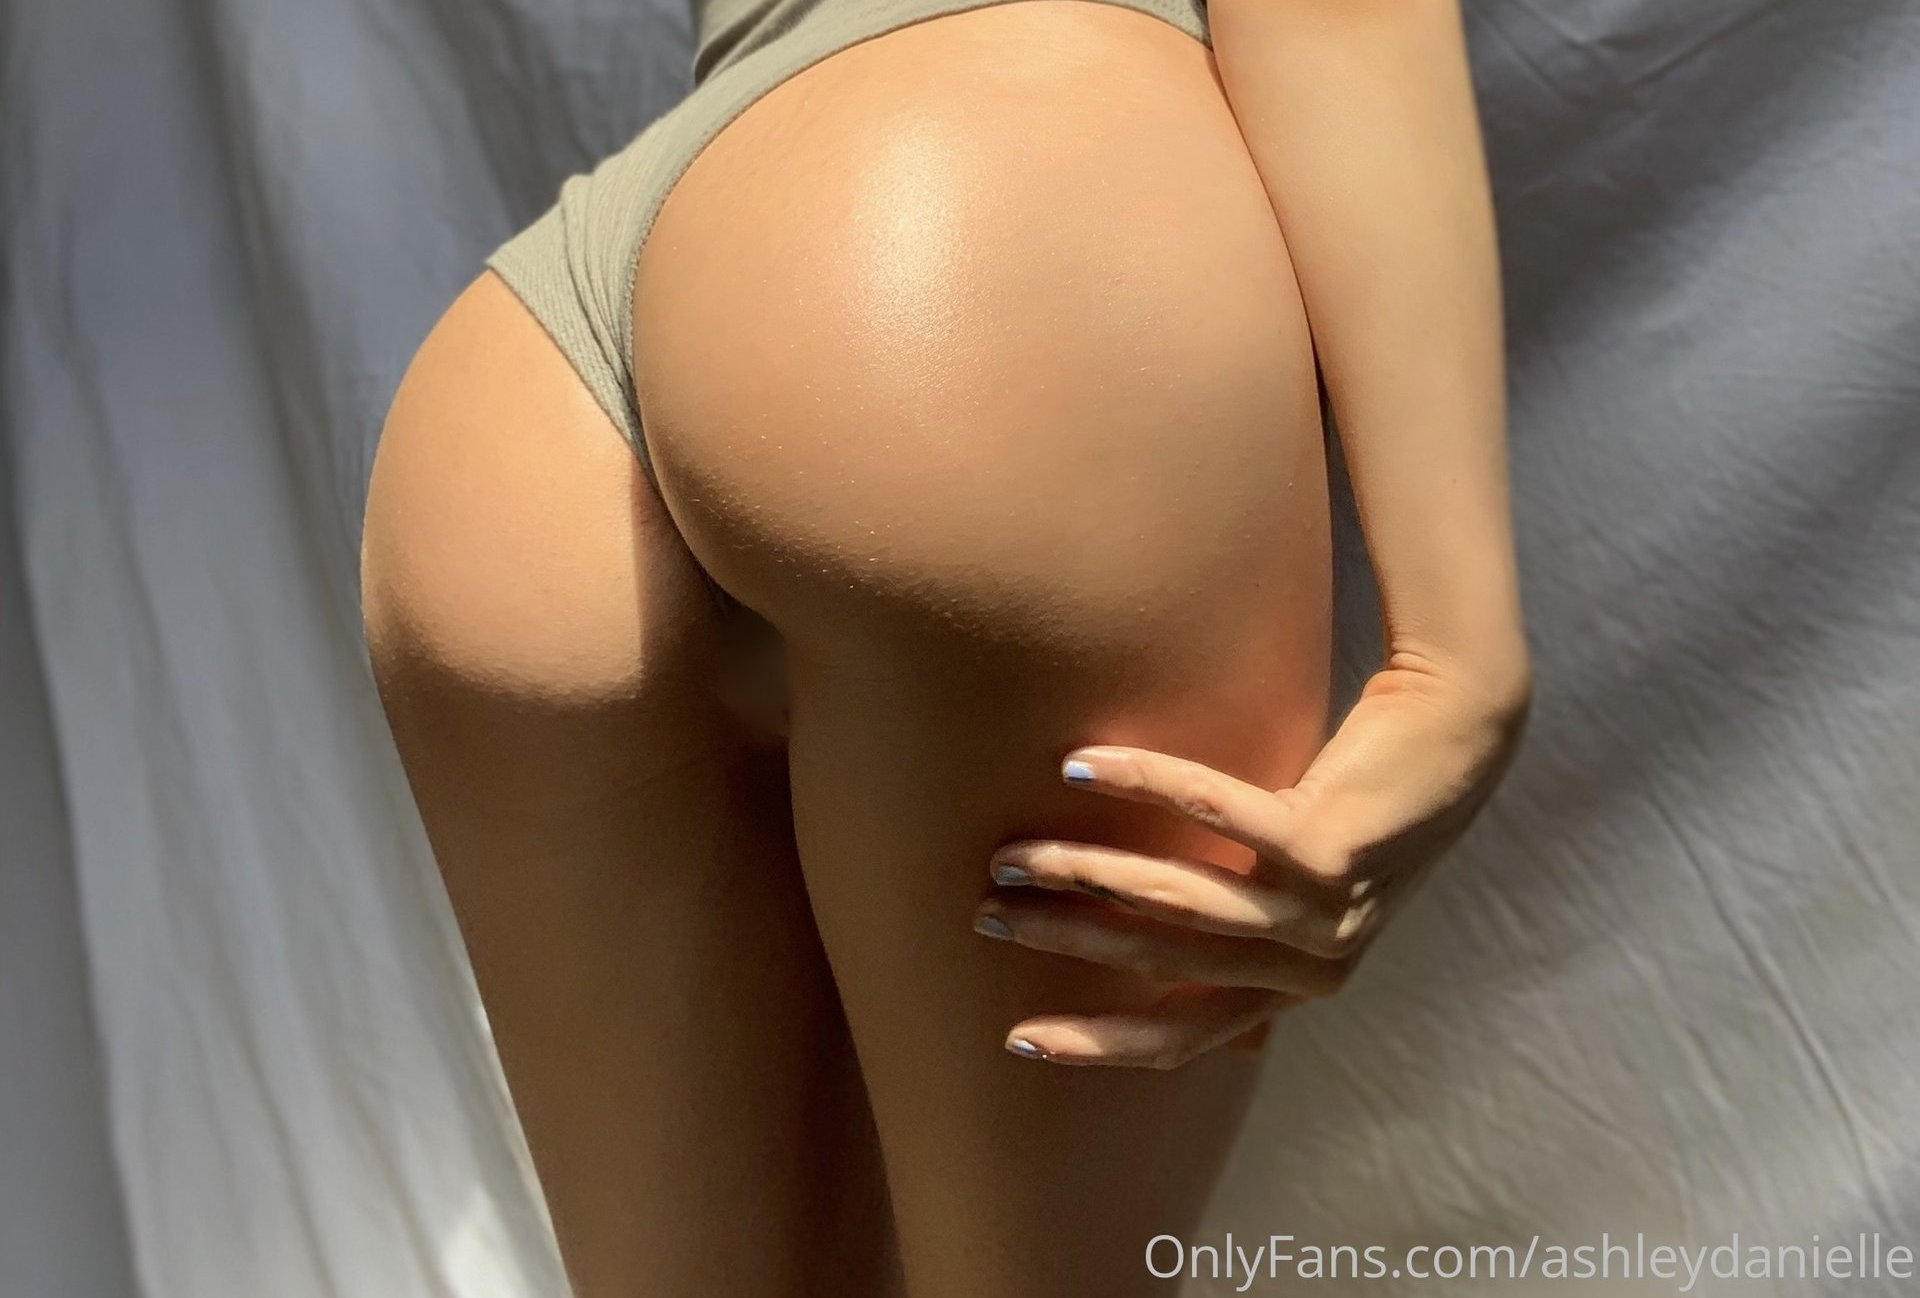 Ashley Danielle Ashleydaniellexox Onlyfans Nude Leaks 0008